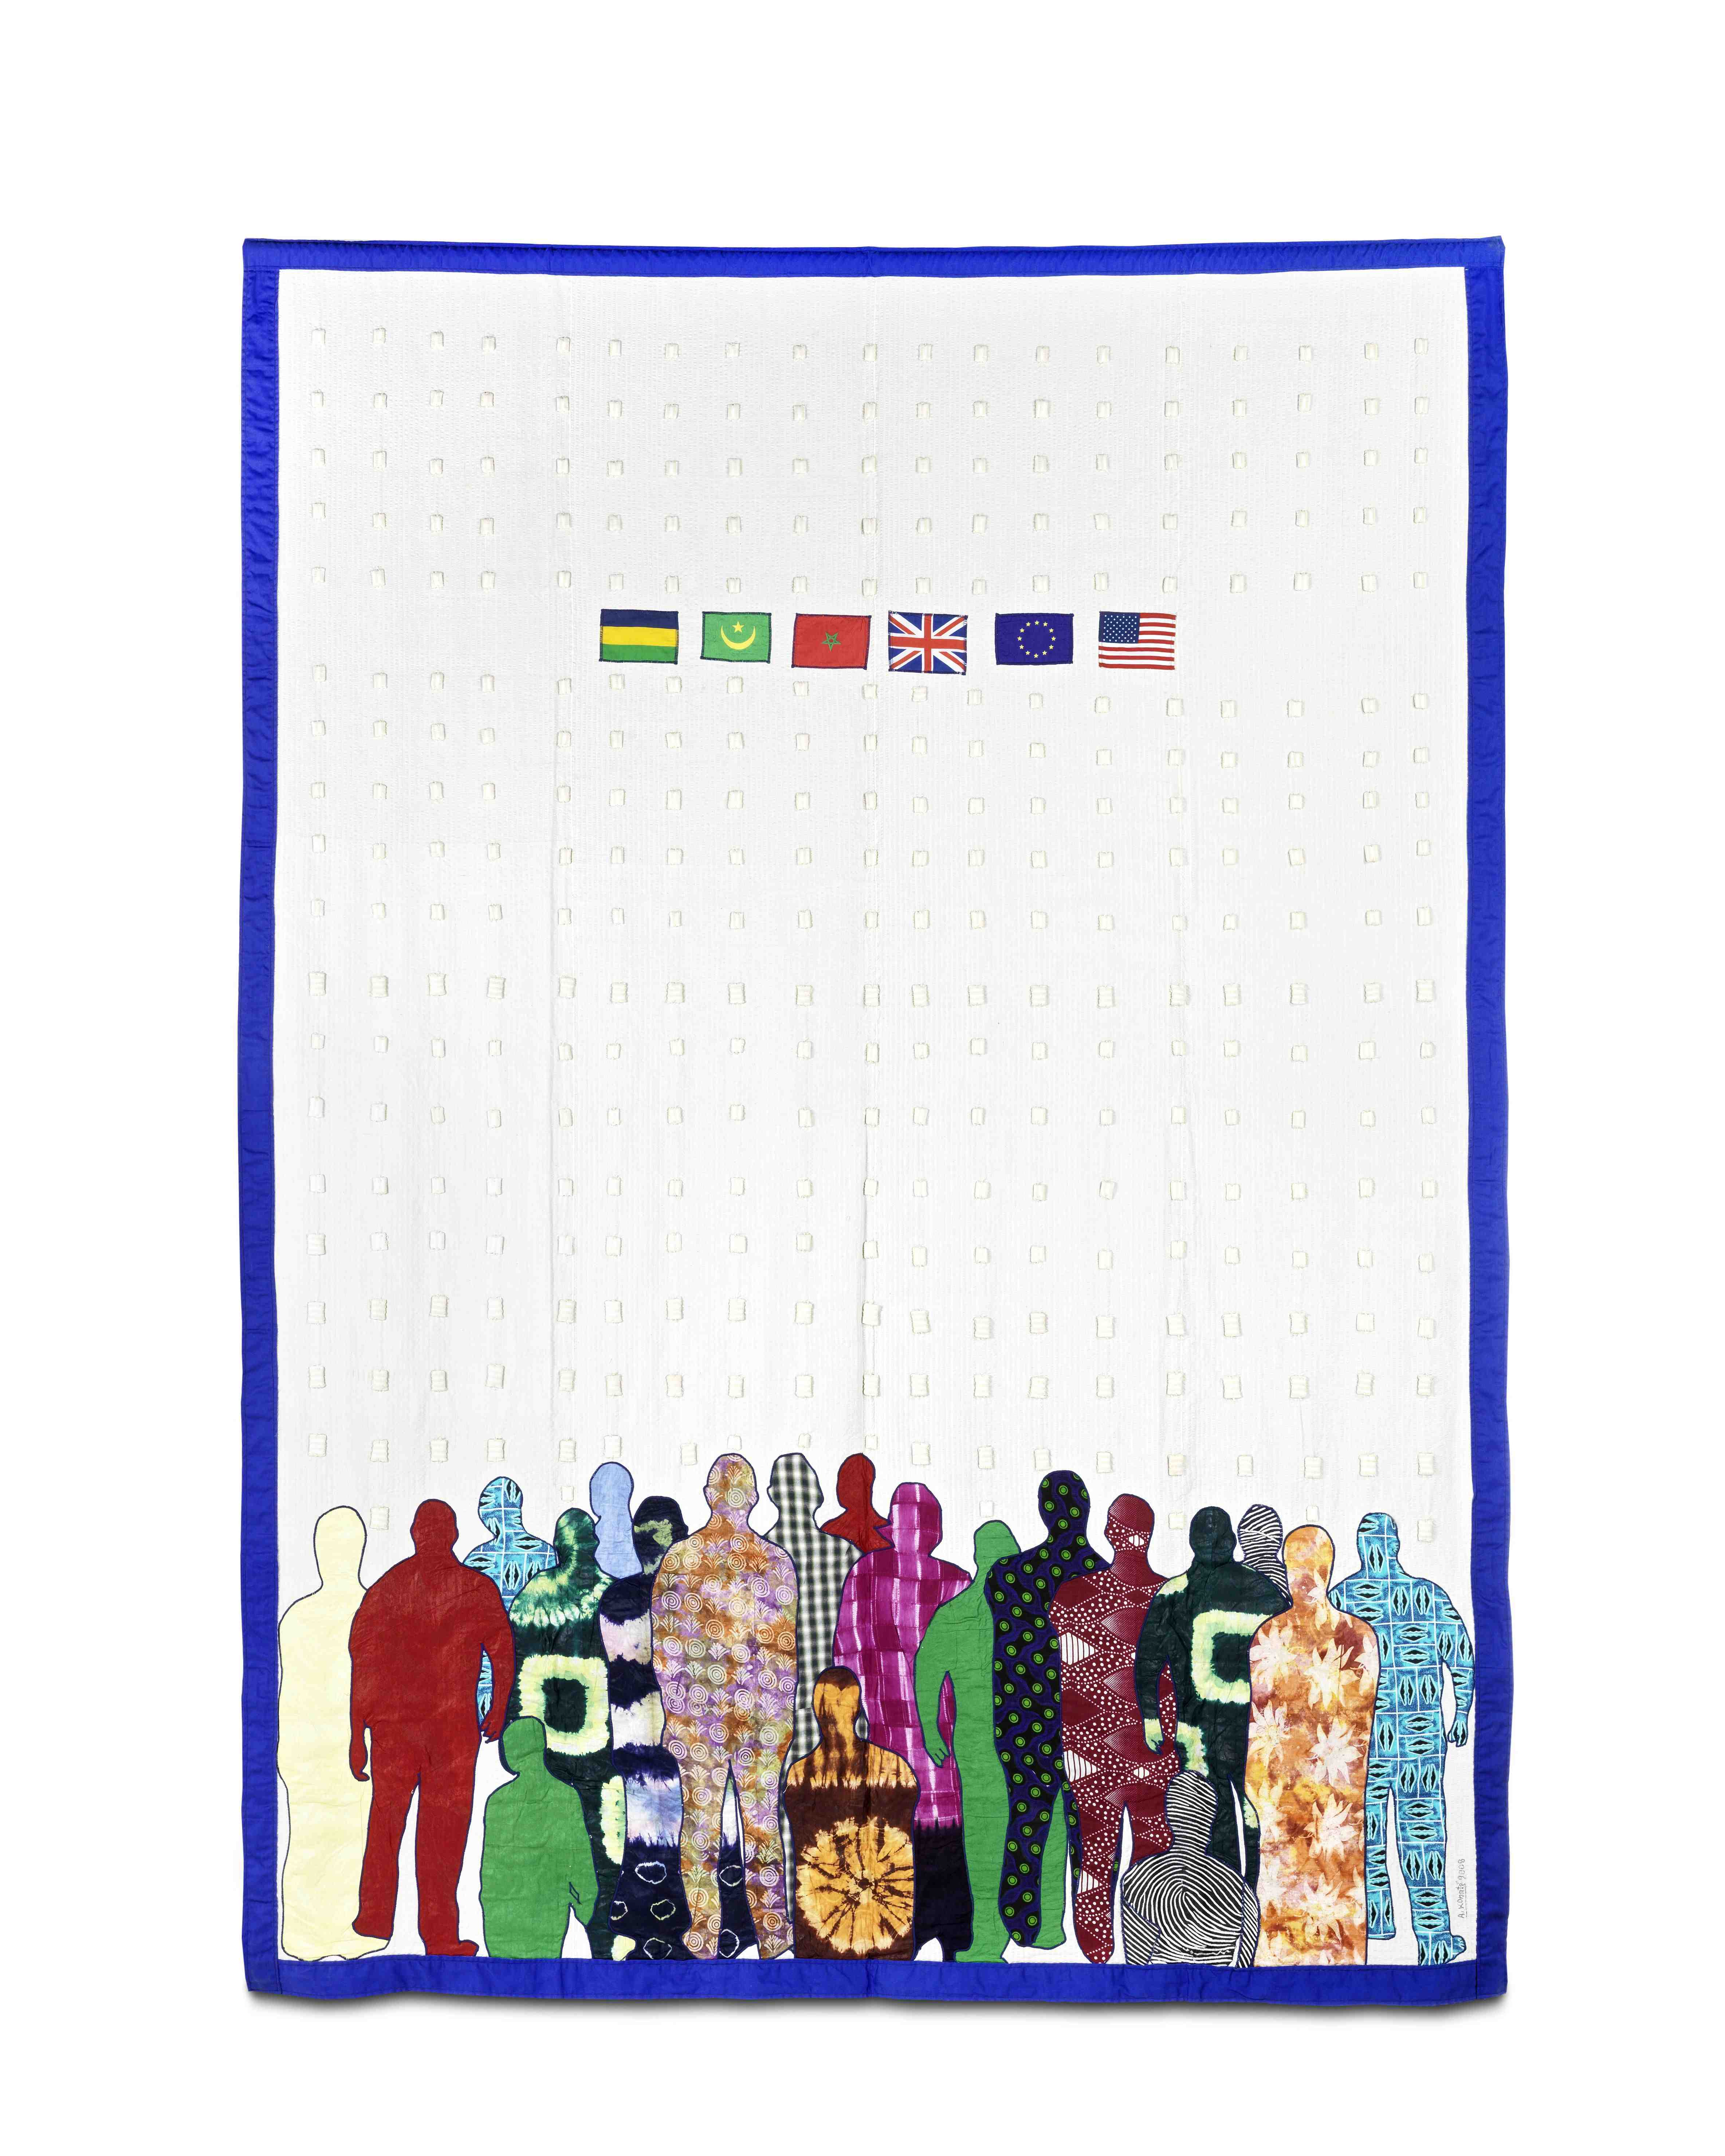 Abdoulaye Konaté, Generation Biométrique no. 5, 2008-2013, Textile, 317  × 227  cm, Courtesy of the artist and Modern Forms